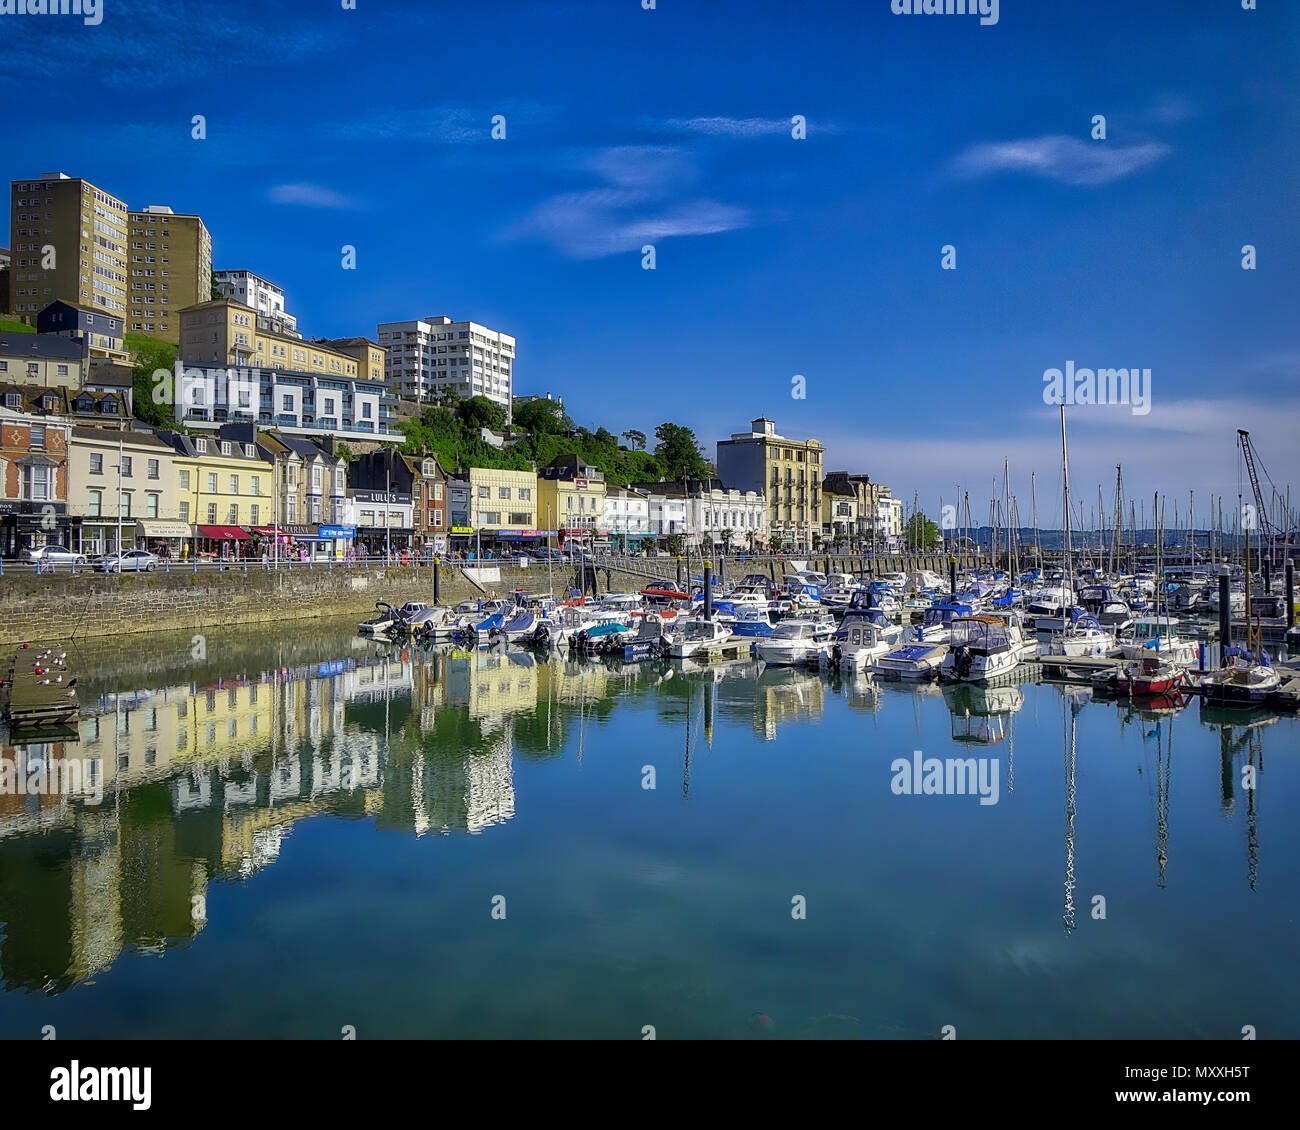 Go - DEVON : le port de Torquay (image HDR) Photo Stock